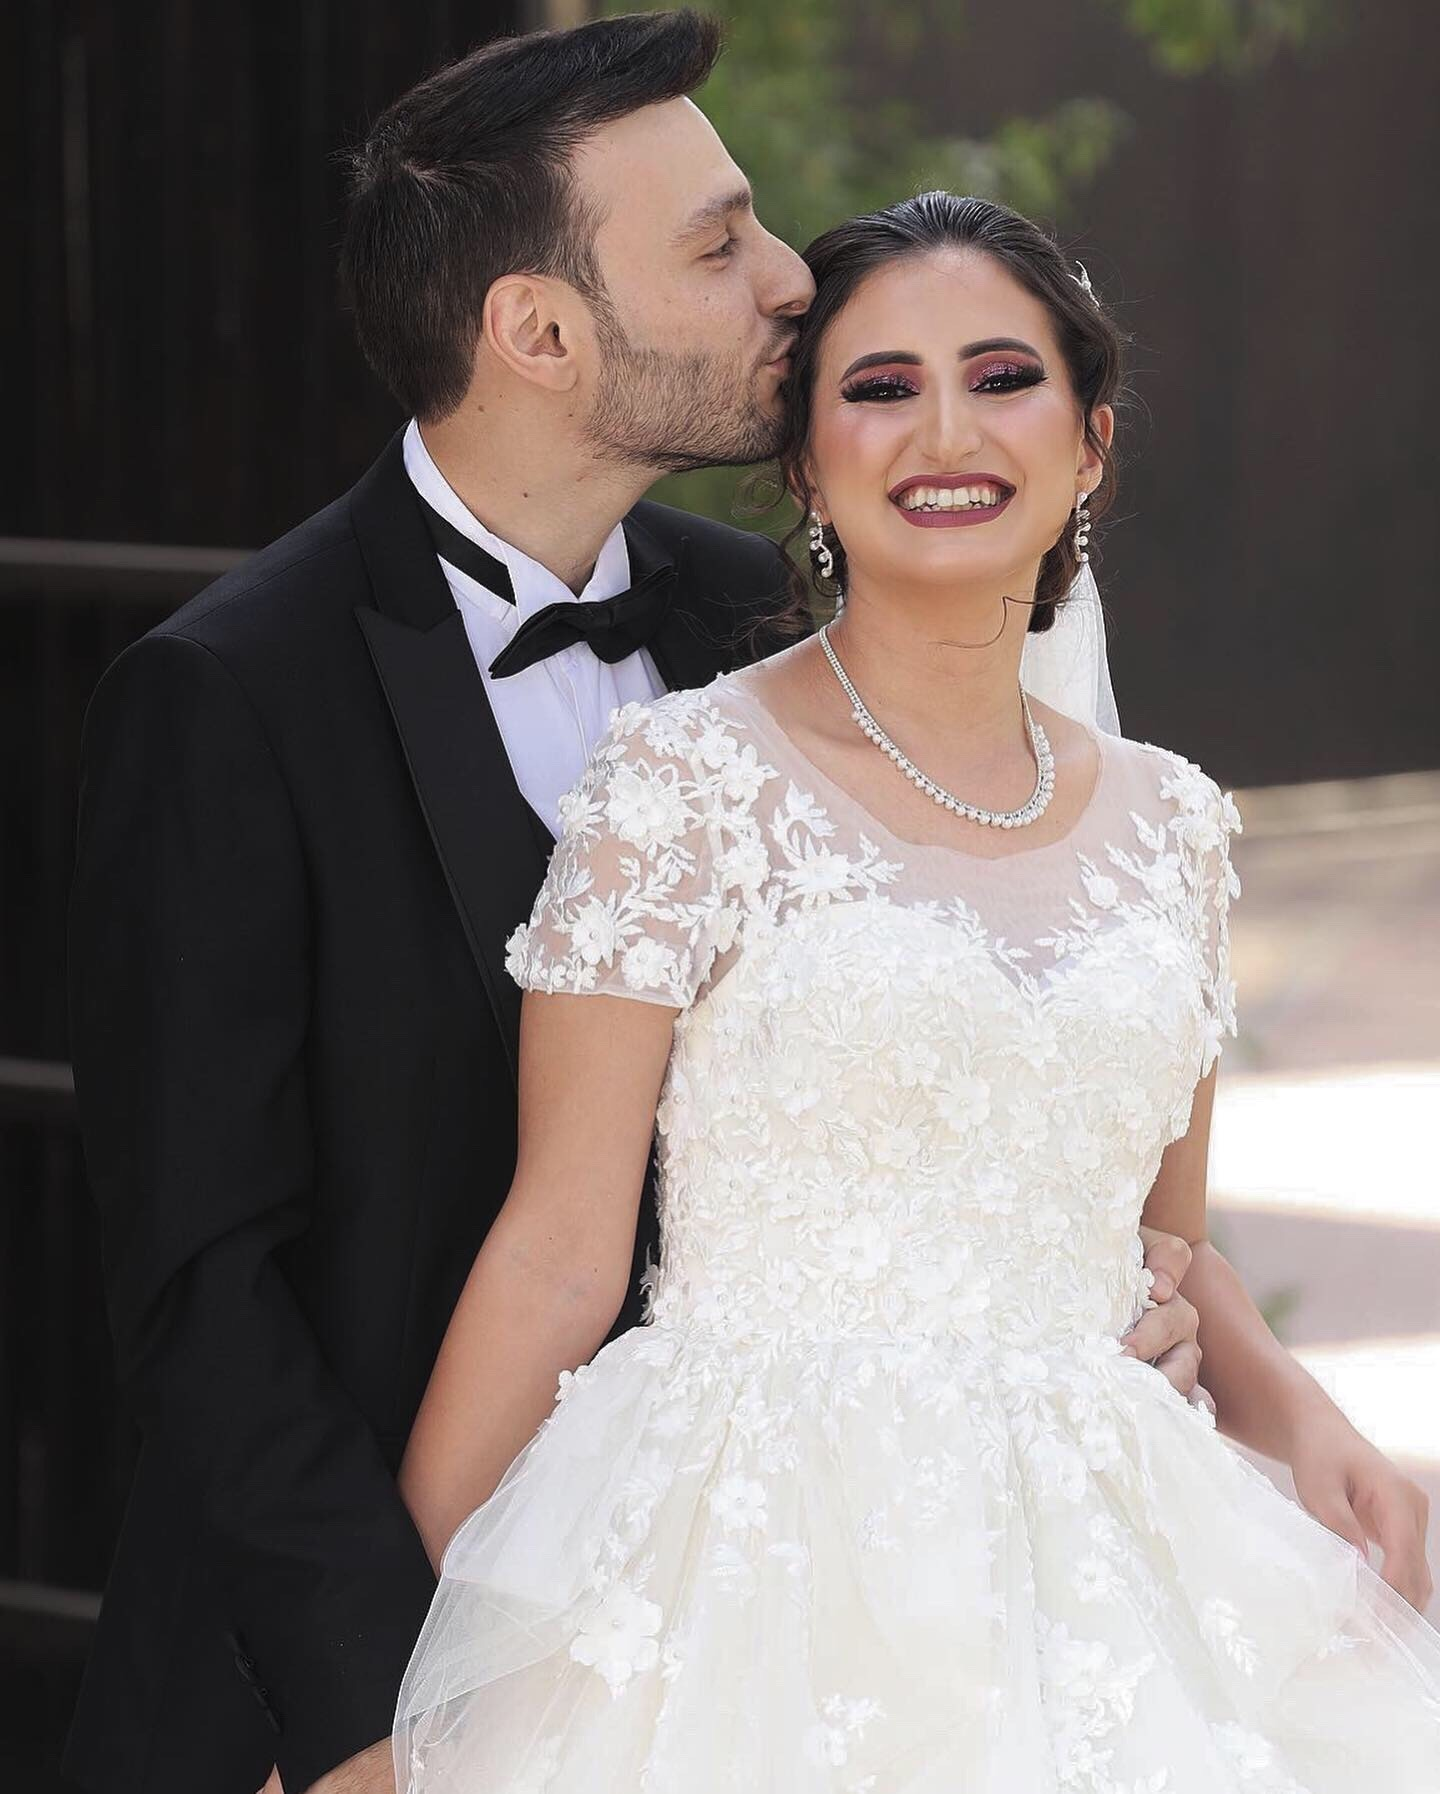 Brides around the United States are using Anomalie to create lace Ball Gown wedding dresses online.